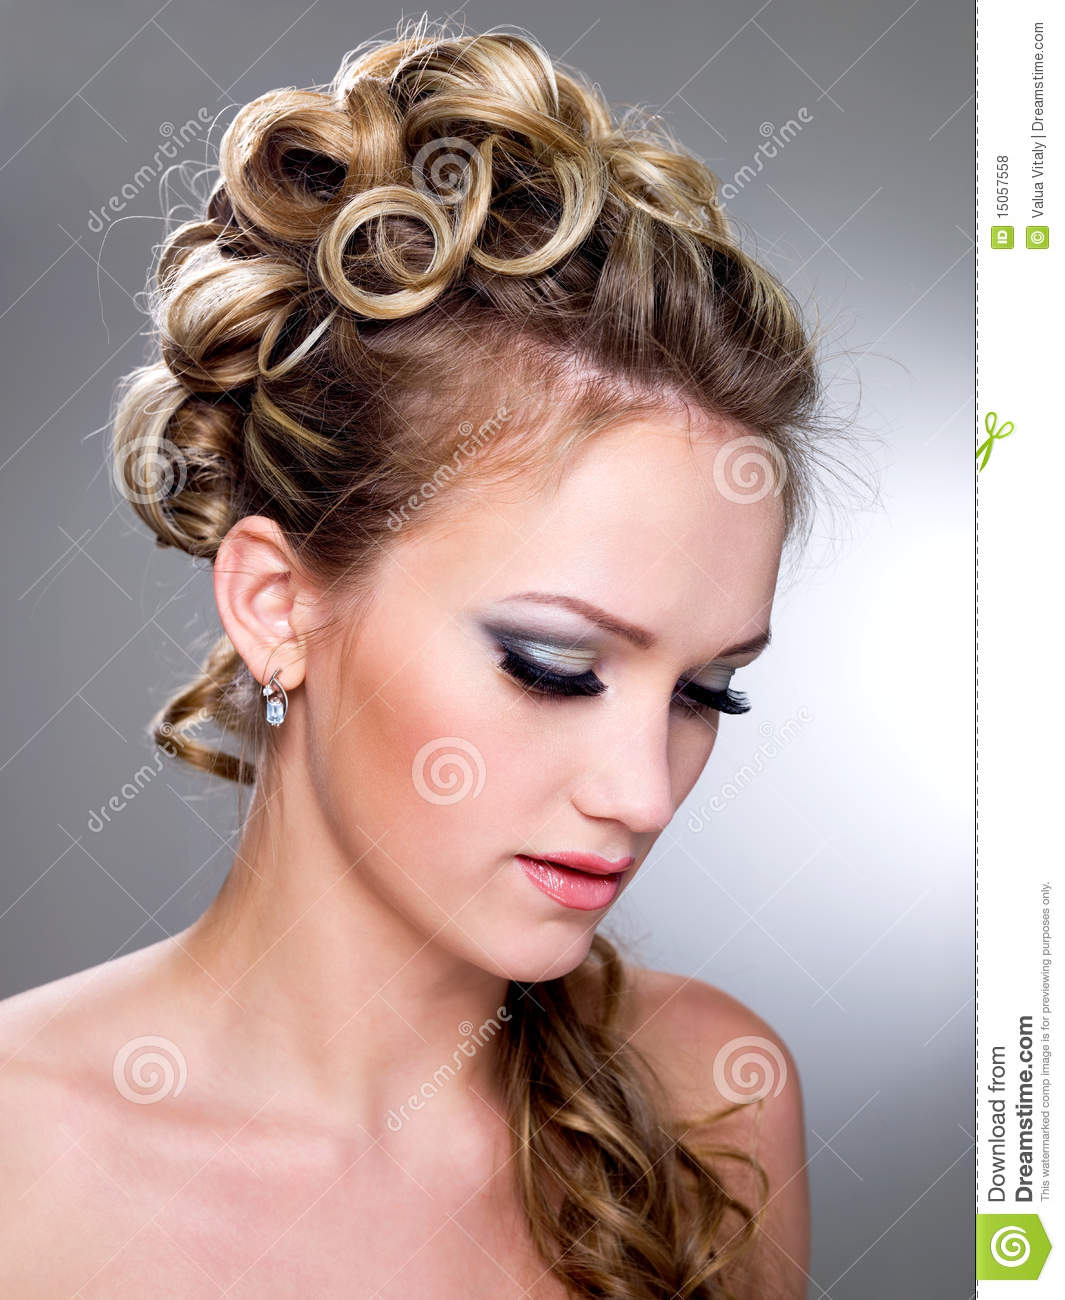 bridal hairstyle free: bridal hair updos pictures. download